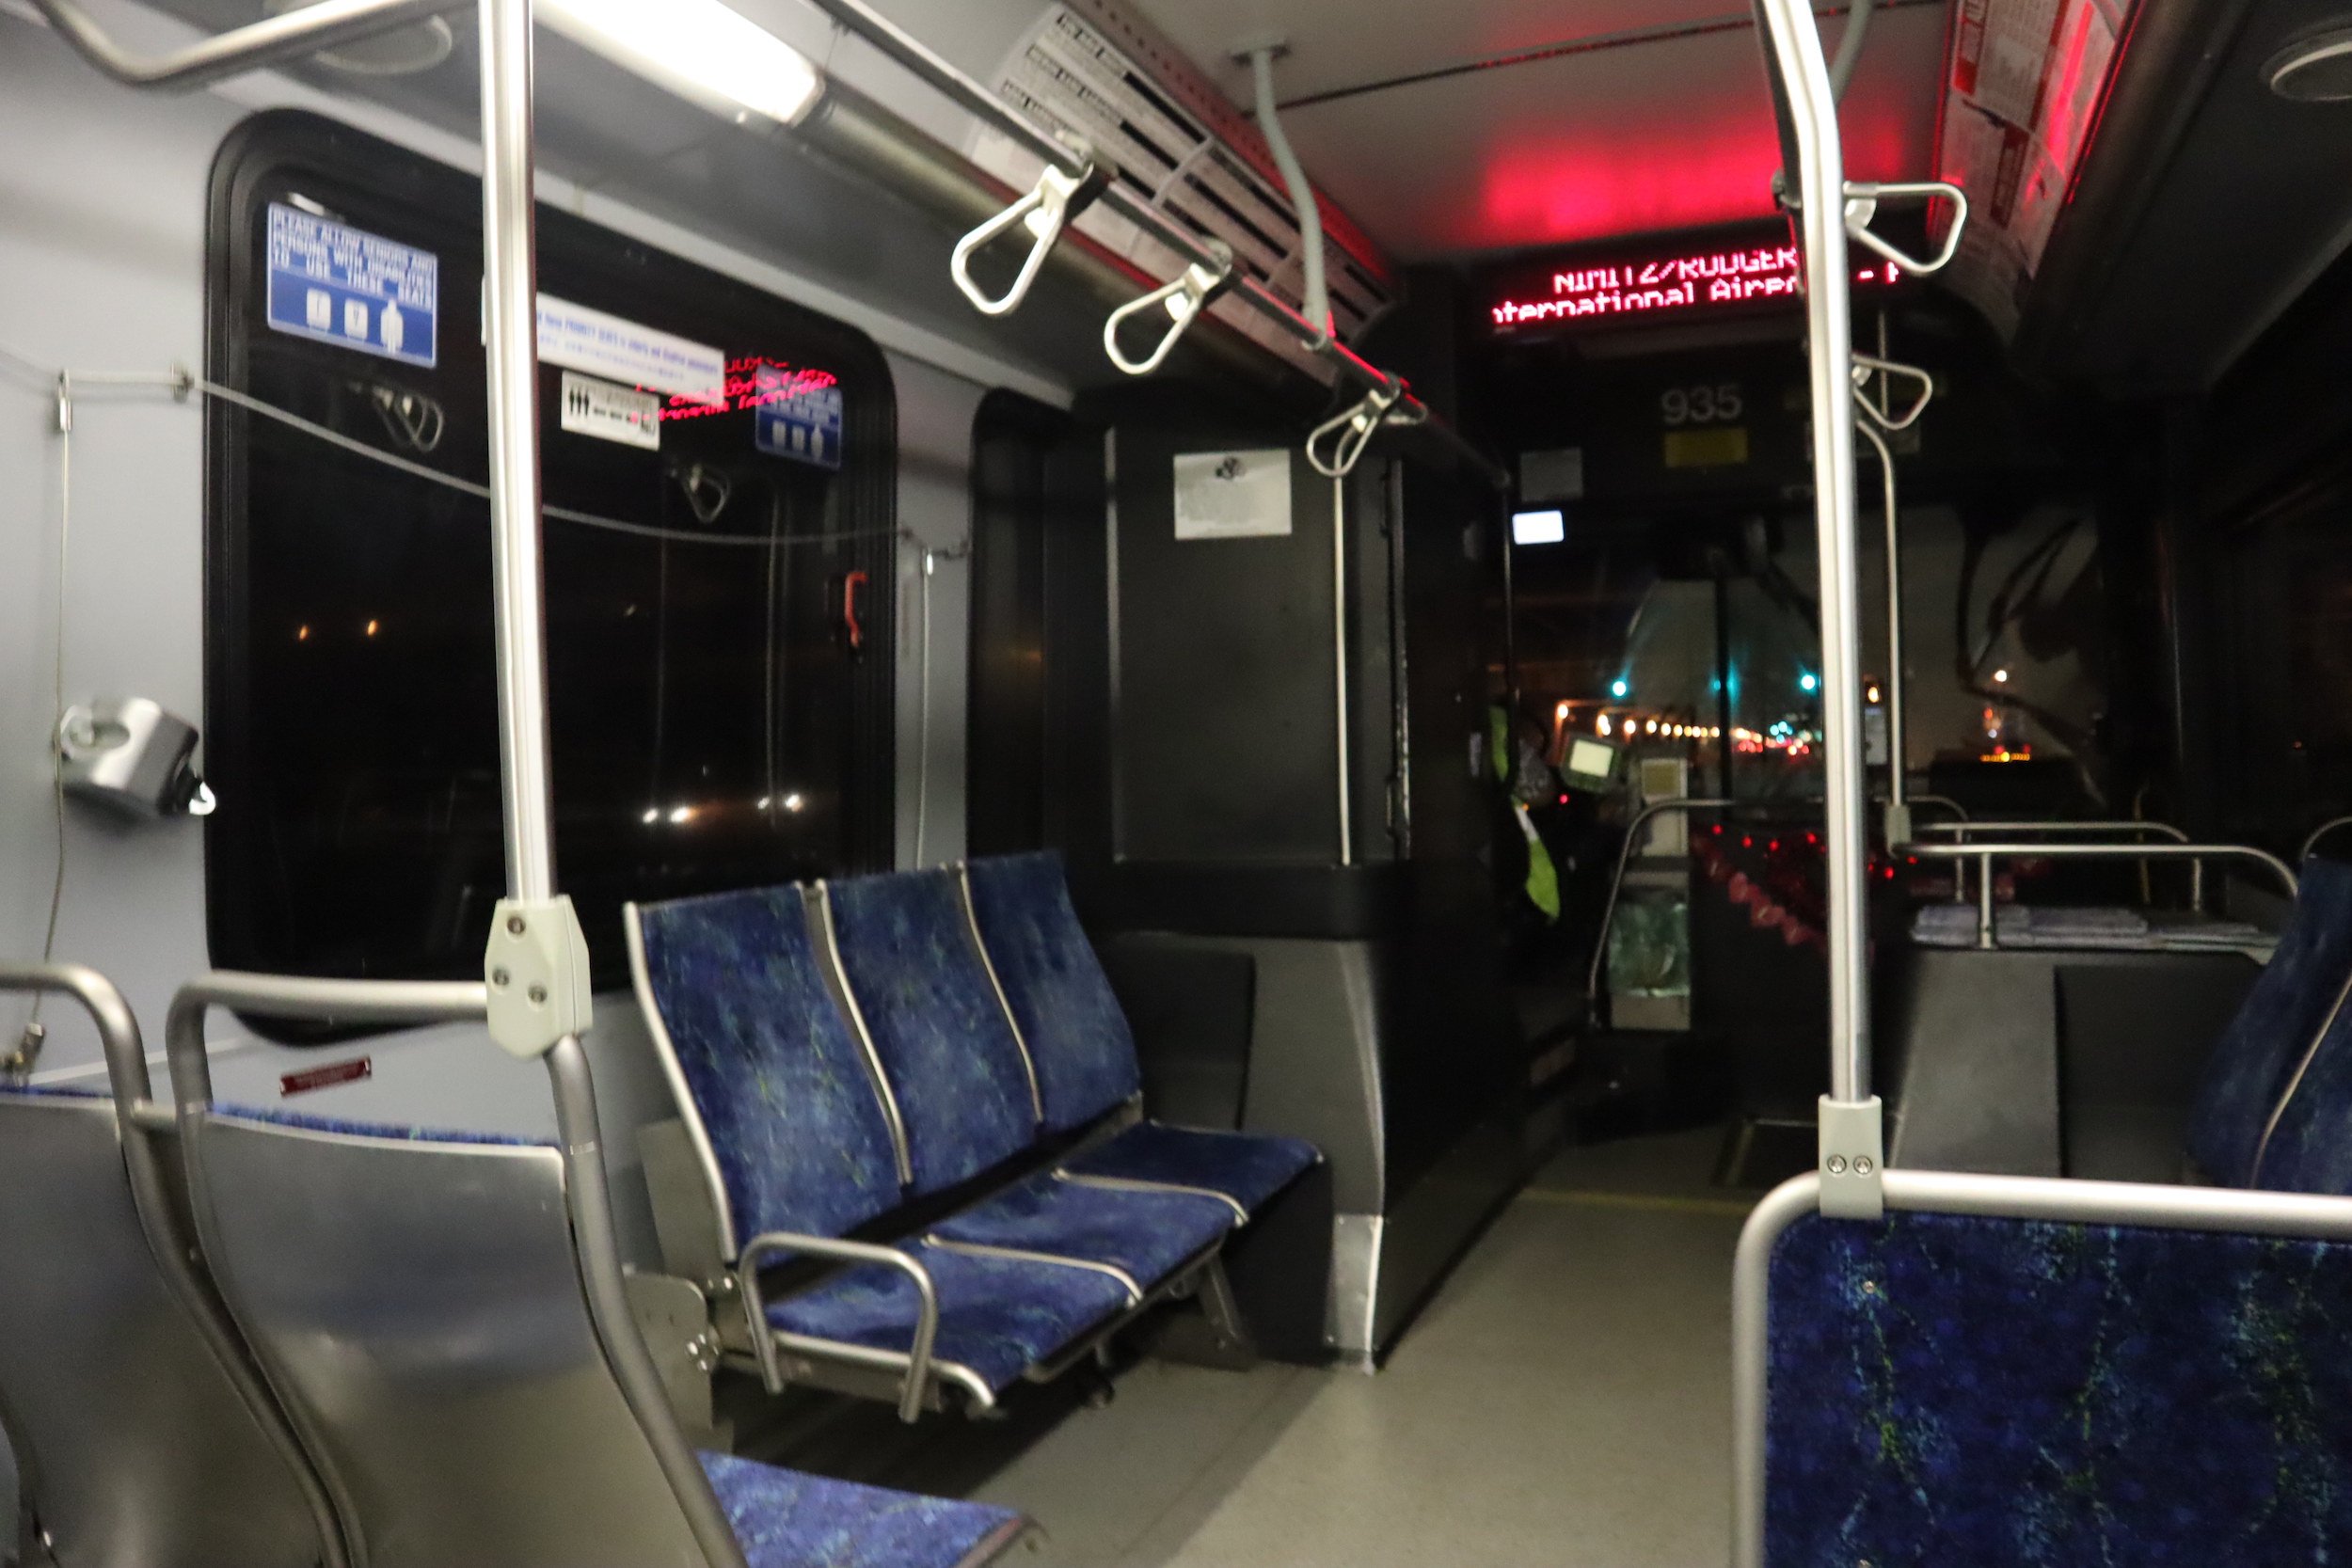 Taking the Honolulu city bus into town…